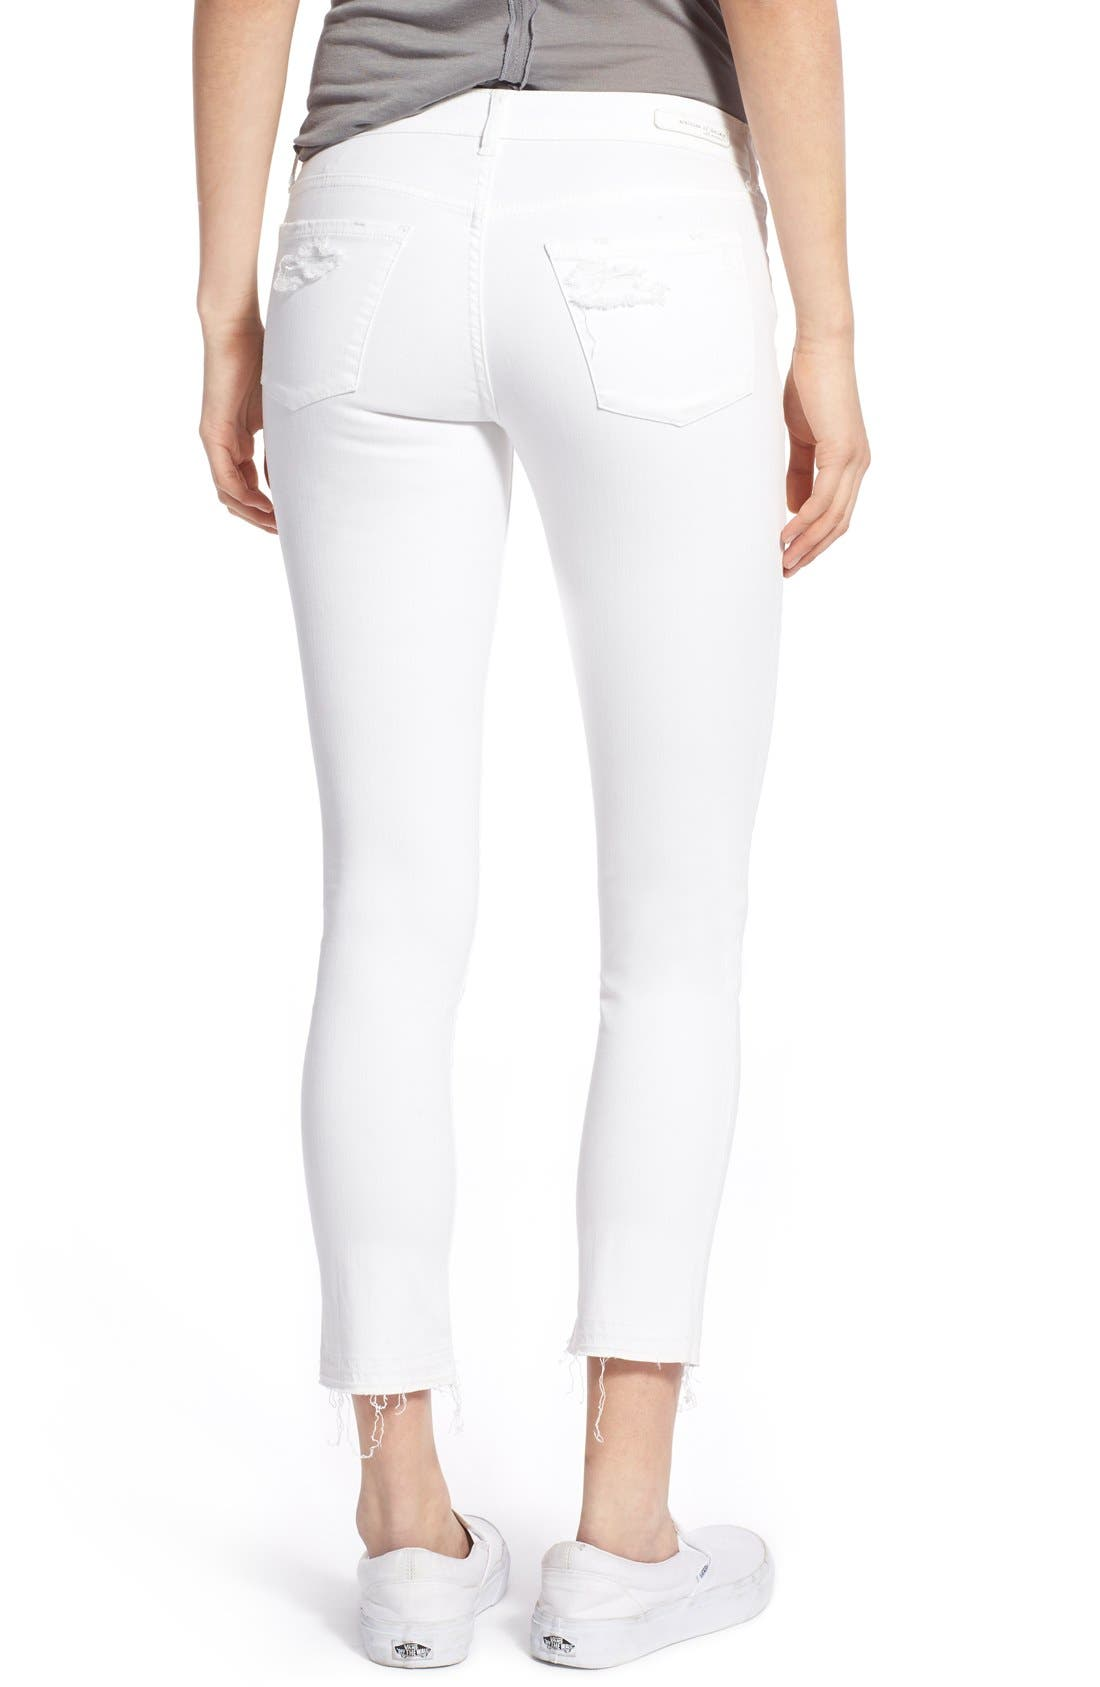 'Carly' Frayed Hem Crop Skinny Jeans,                             Alternate thumbnail 5, color,                             110